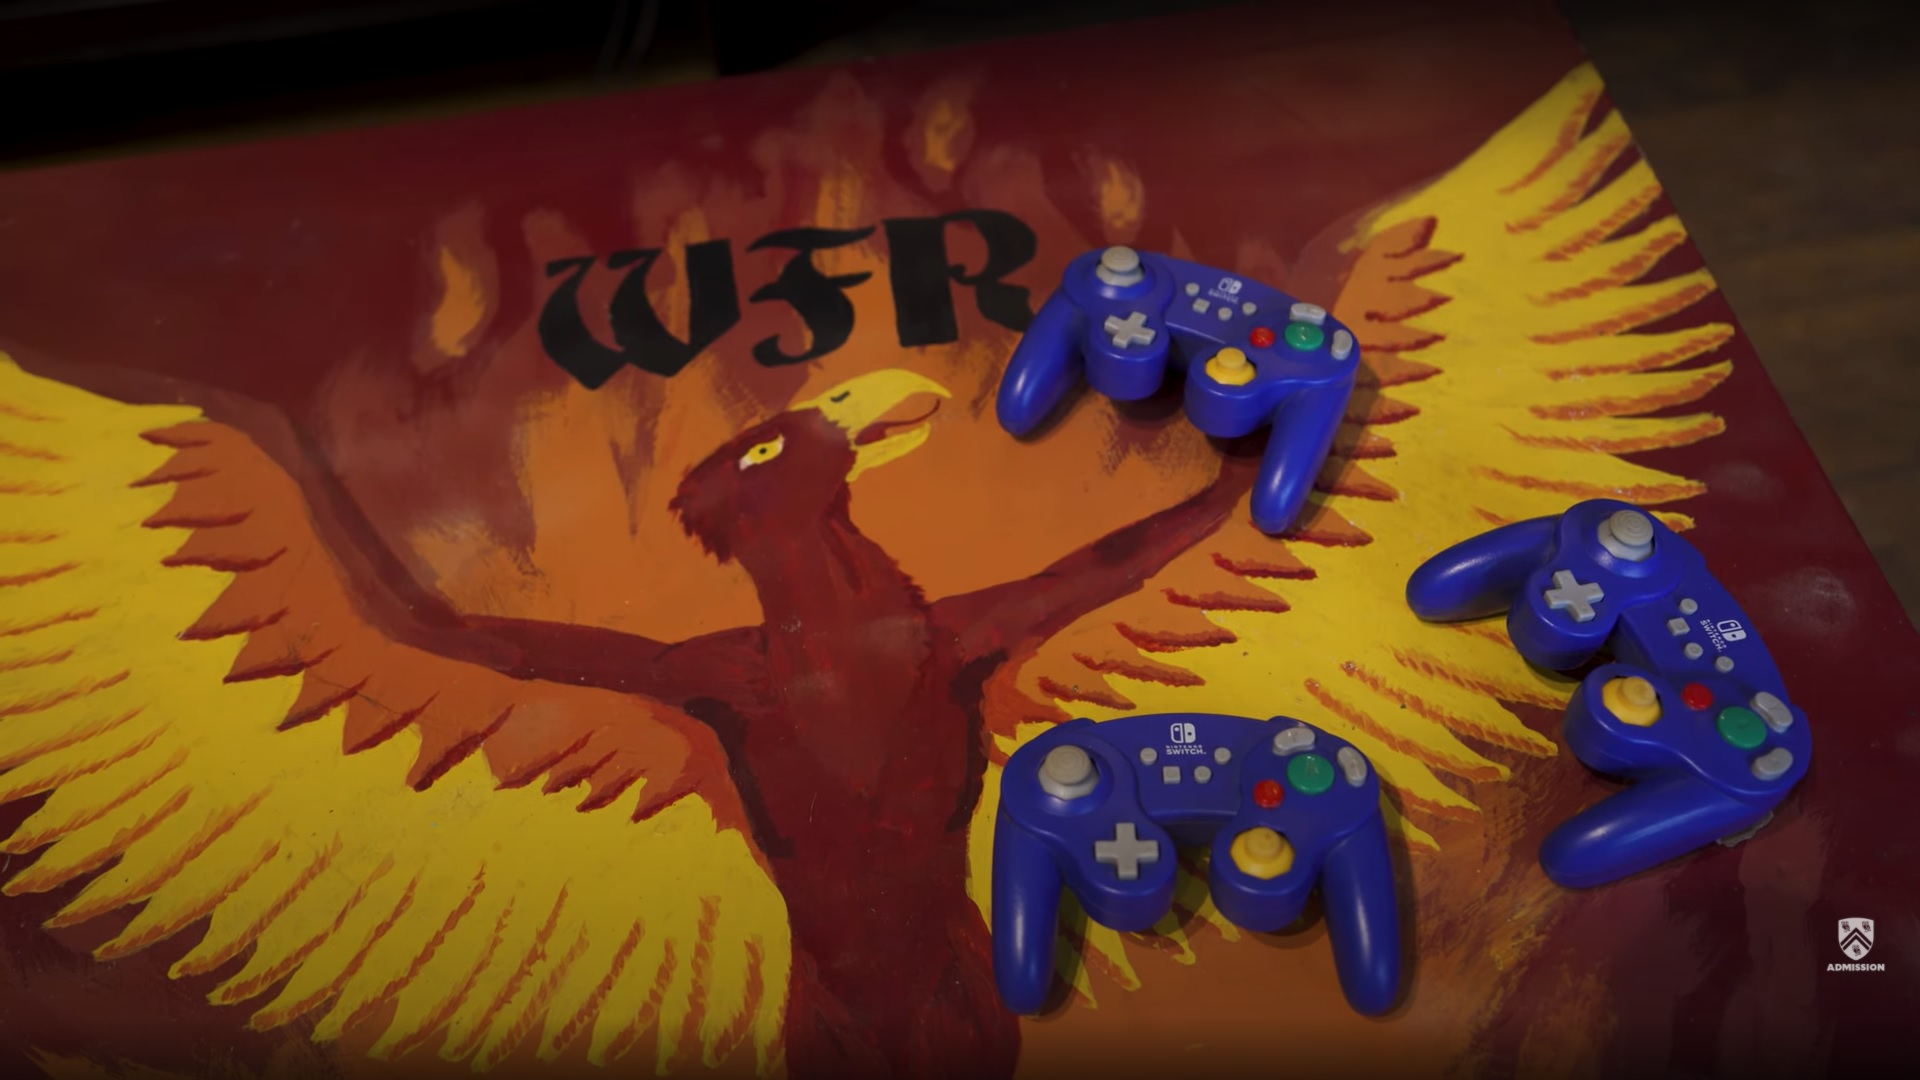 Three blue game controllers sit on top of a table painted with the mascot of Will Rice College, a phoenix.